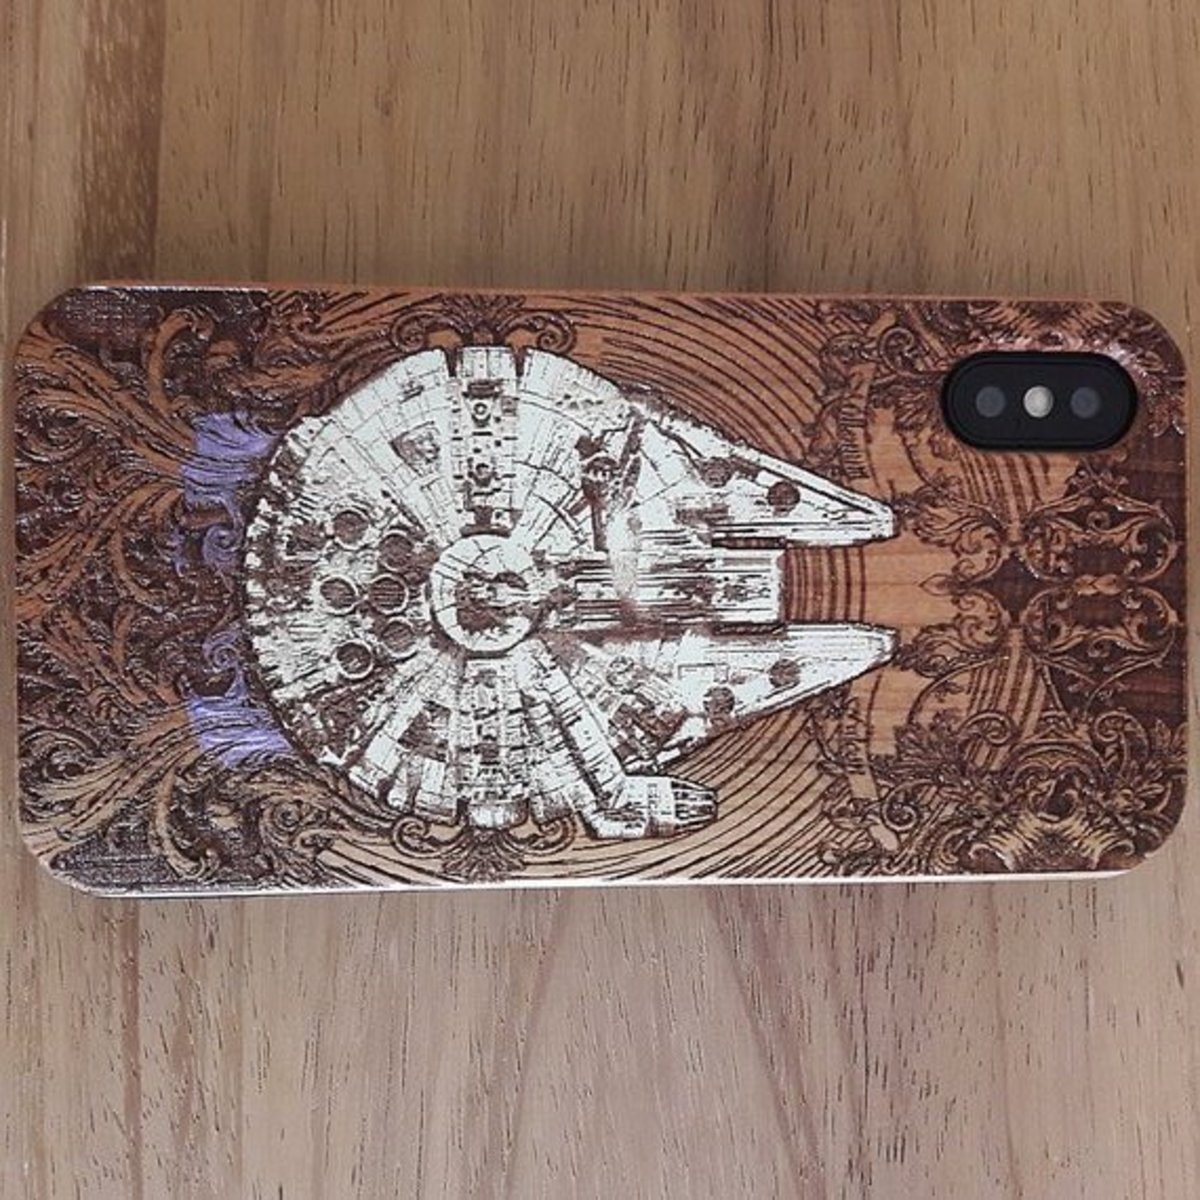 The Engravers Dungeon on Etsy does beautiful work. They have tons of different wood phone covers and they make posters from woodcuts, too.